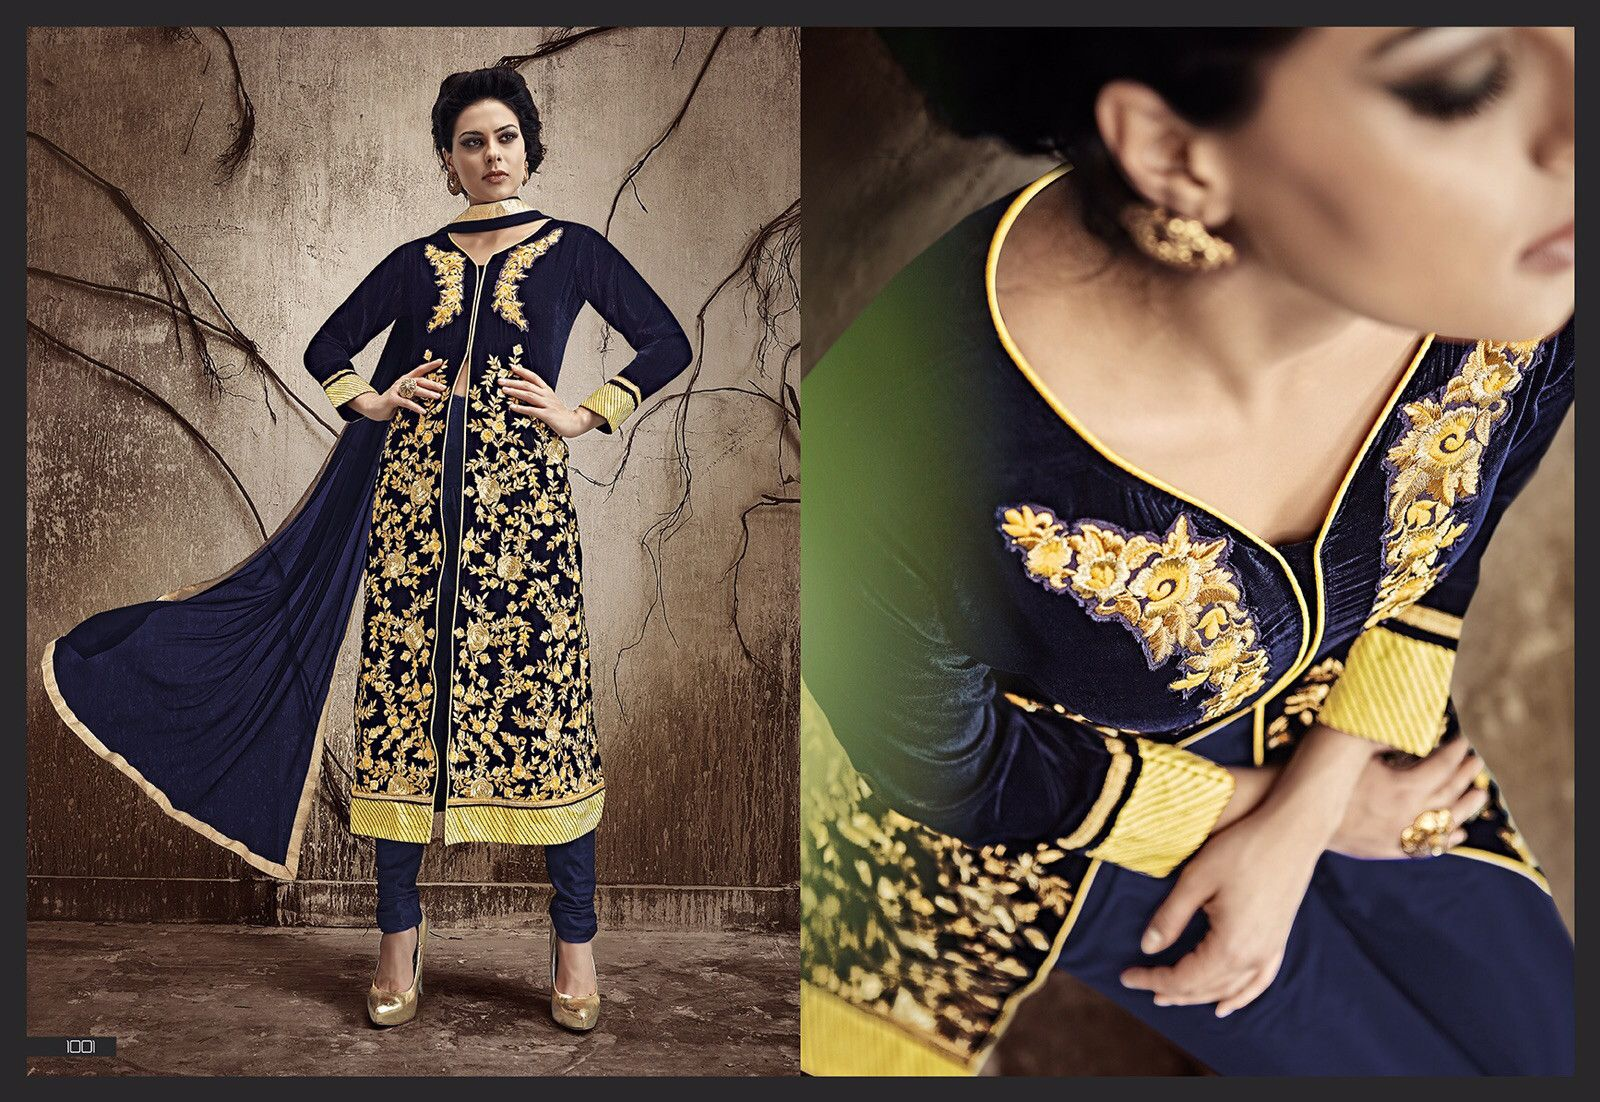 Full sleeve ceremonial dress with resham and thread embroidery